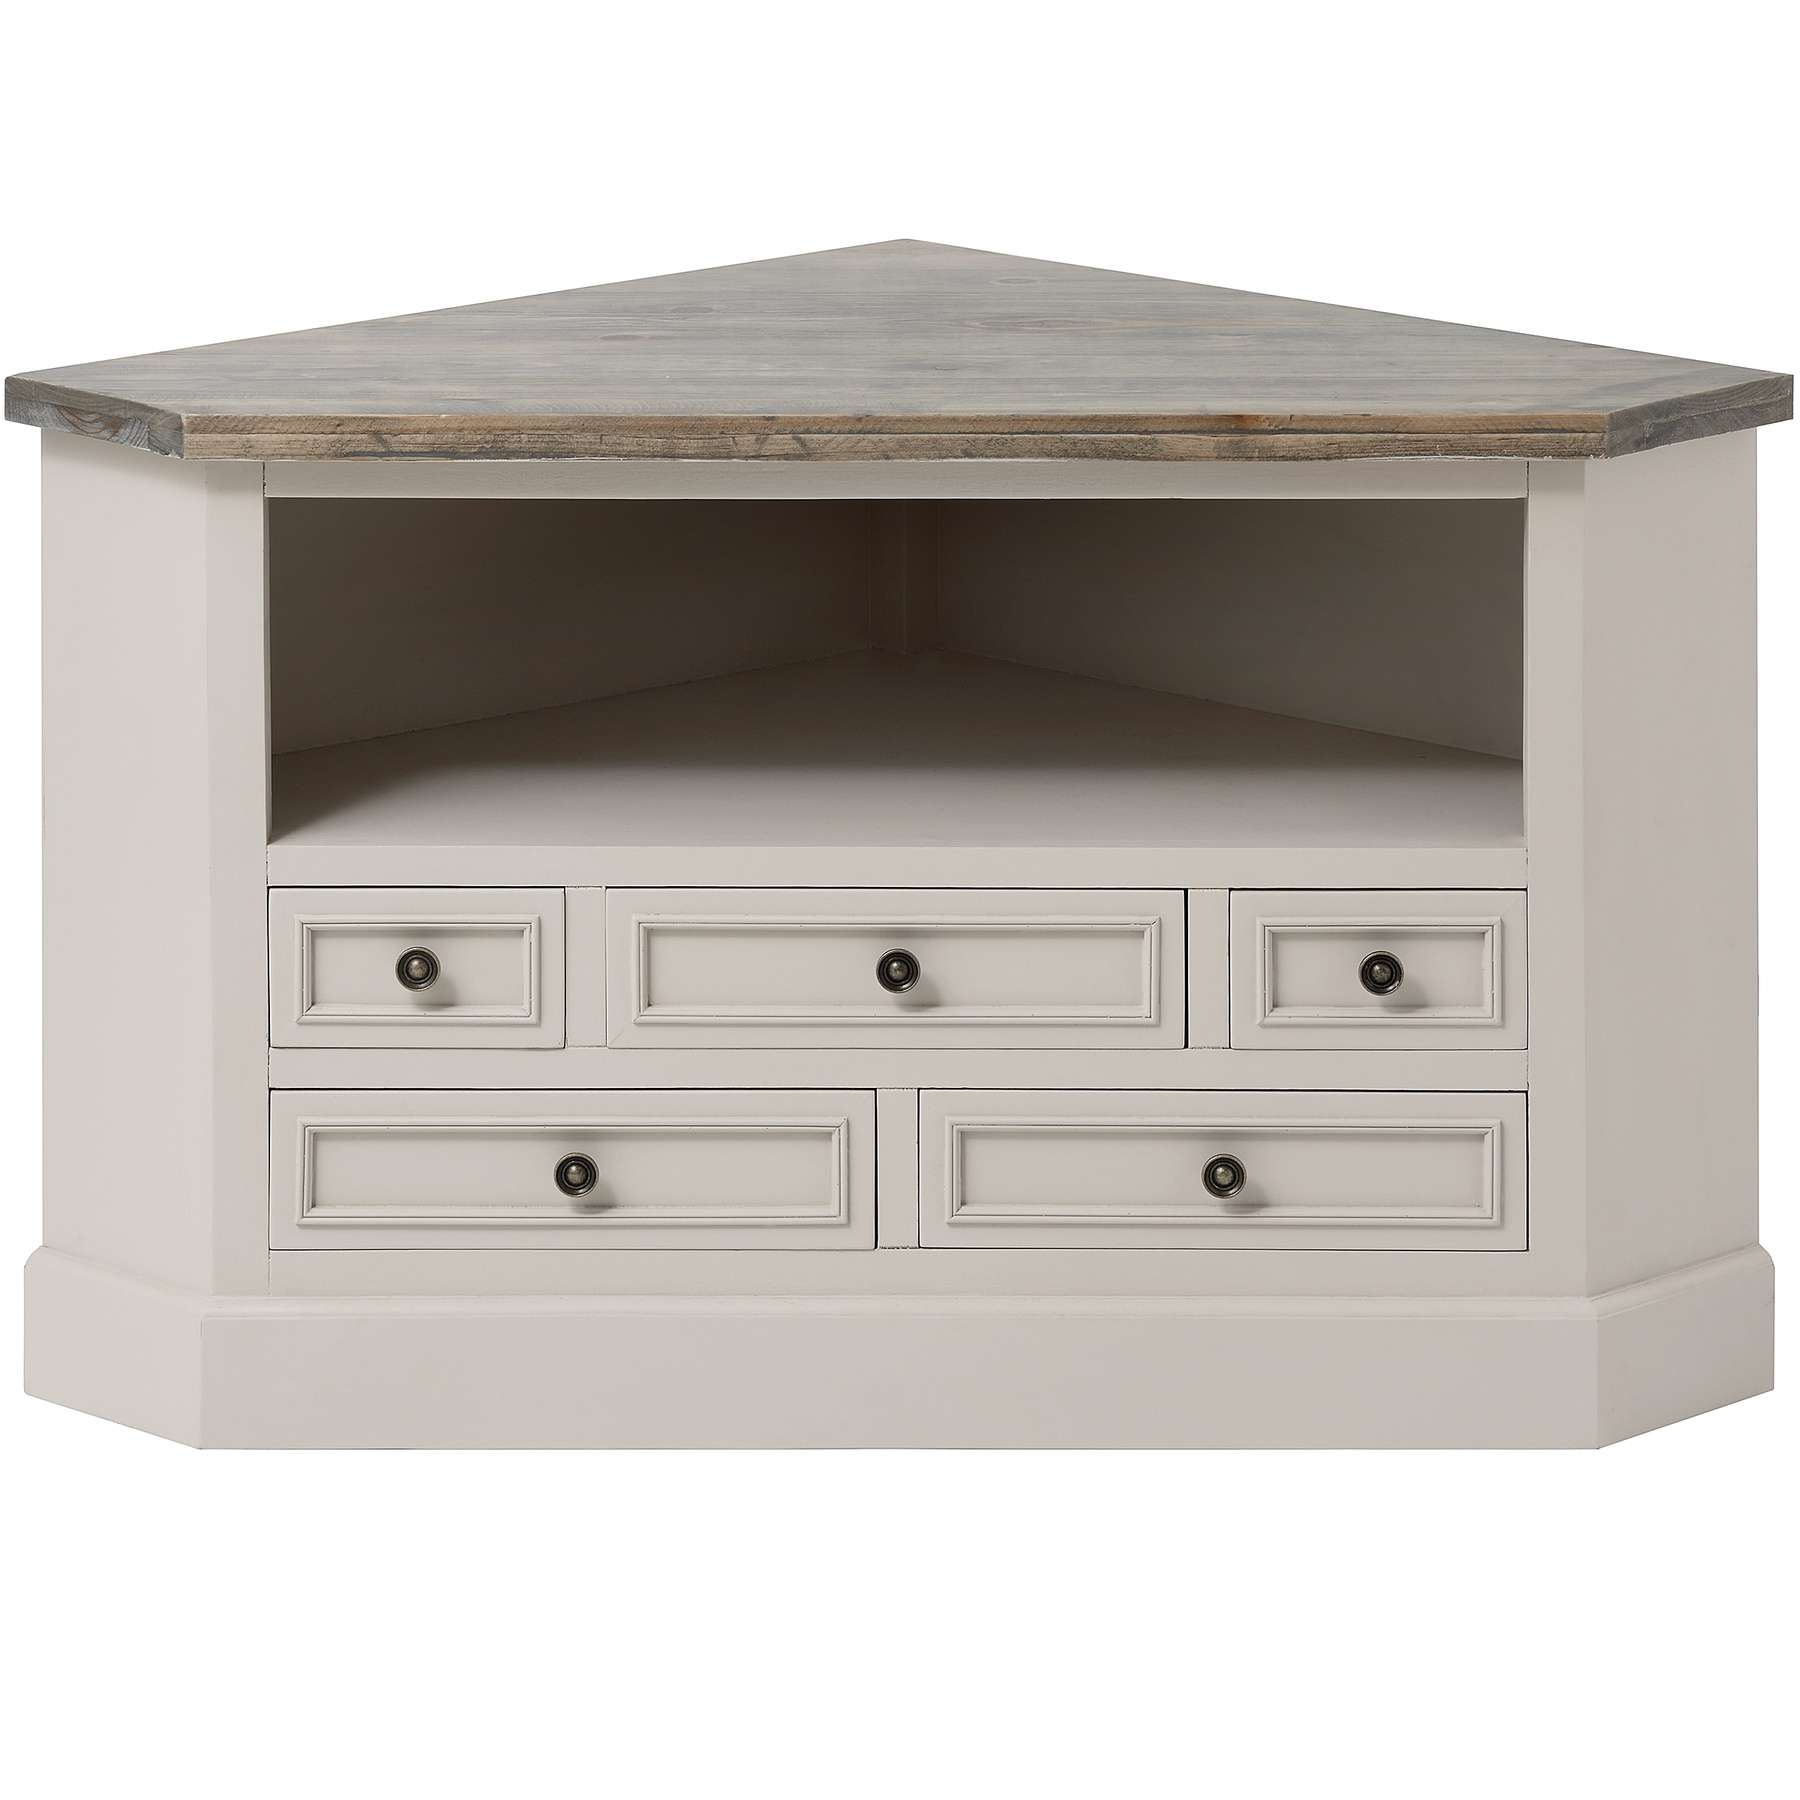 Rustic White Painted Walnut Wood Corner Tv Stand With Drawers Of Intended For Rustic White Tv Stands (View 15 of 20)